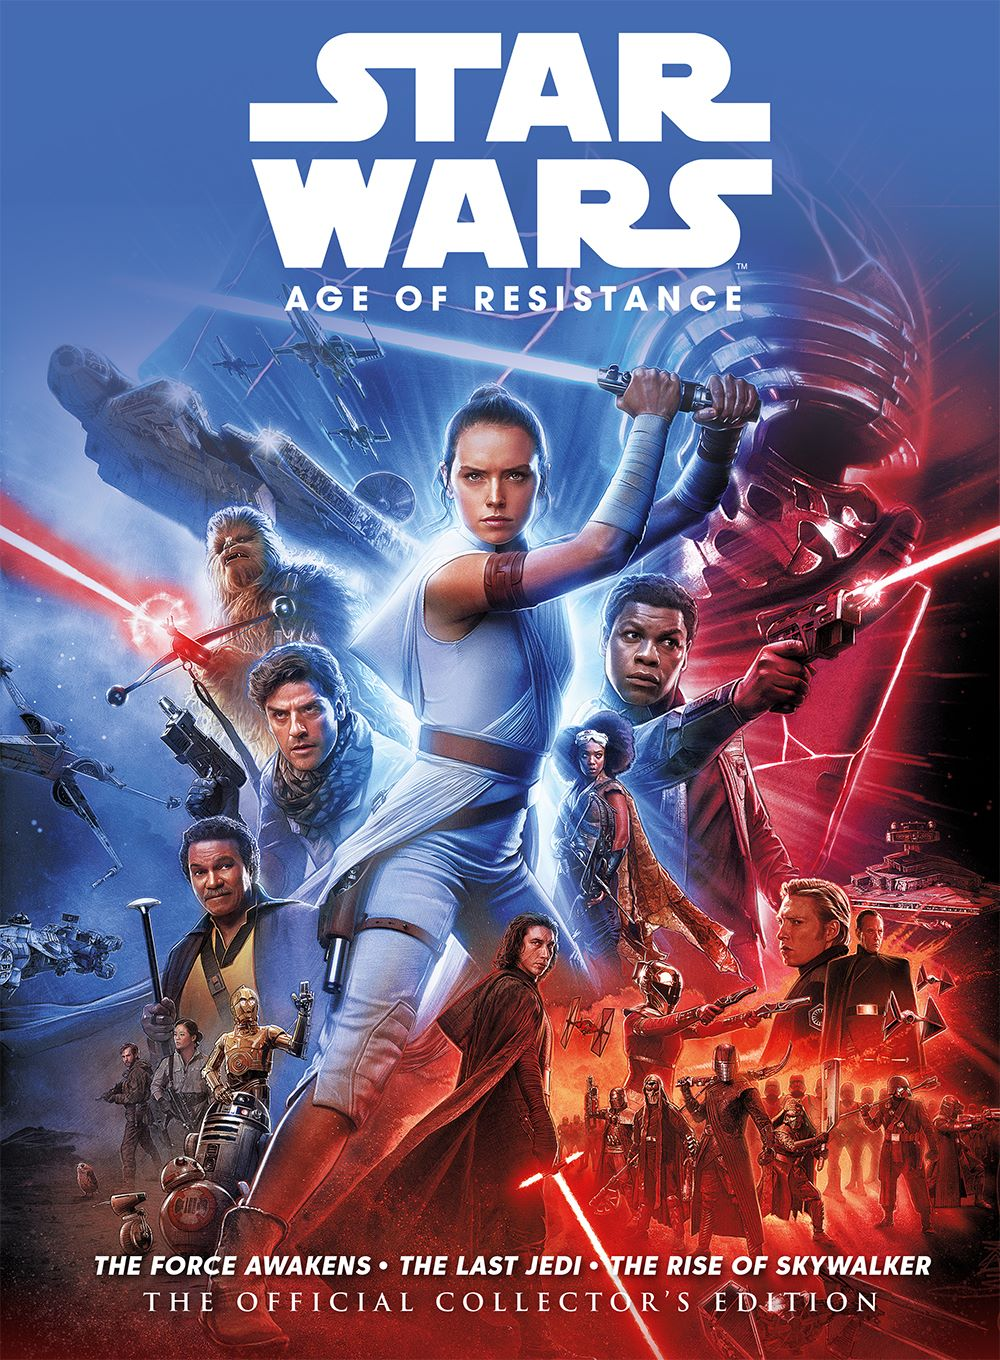 starwars_ageofresistance_hardback ComicList Previews: STAR WARS THE AGE OF RESISTANCE THE OFFICIAL COLLECTOR'S EDITION HC